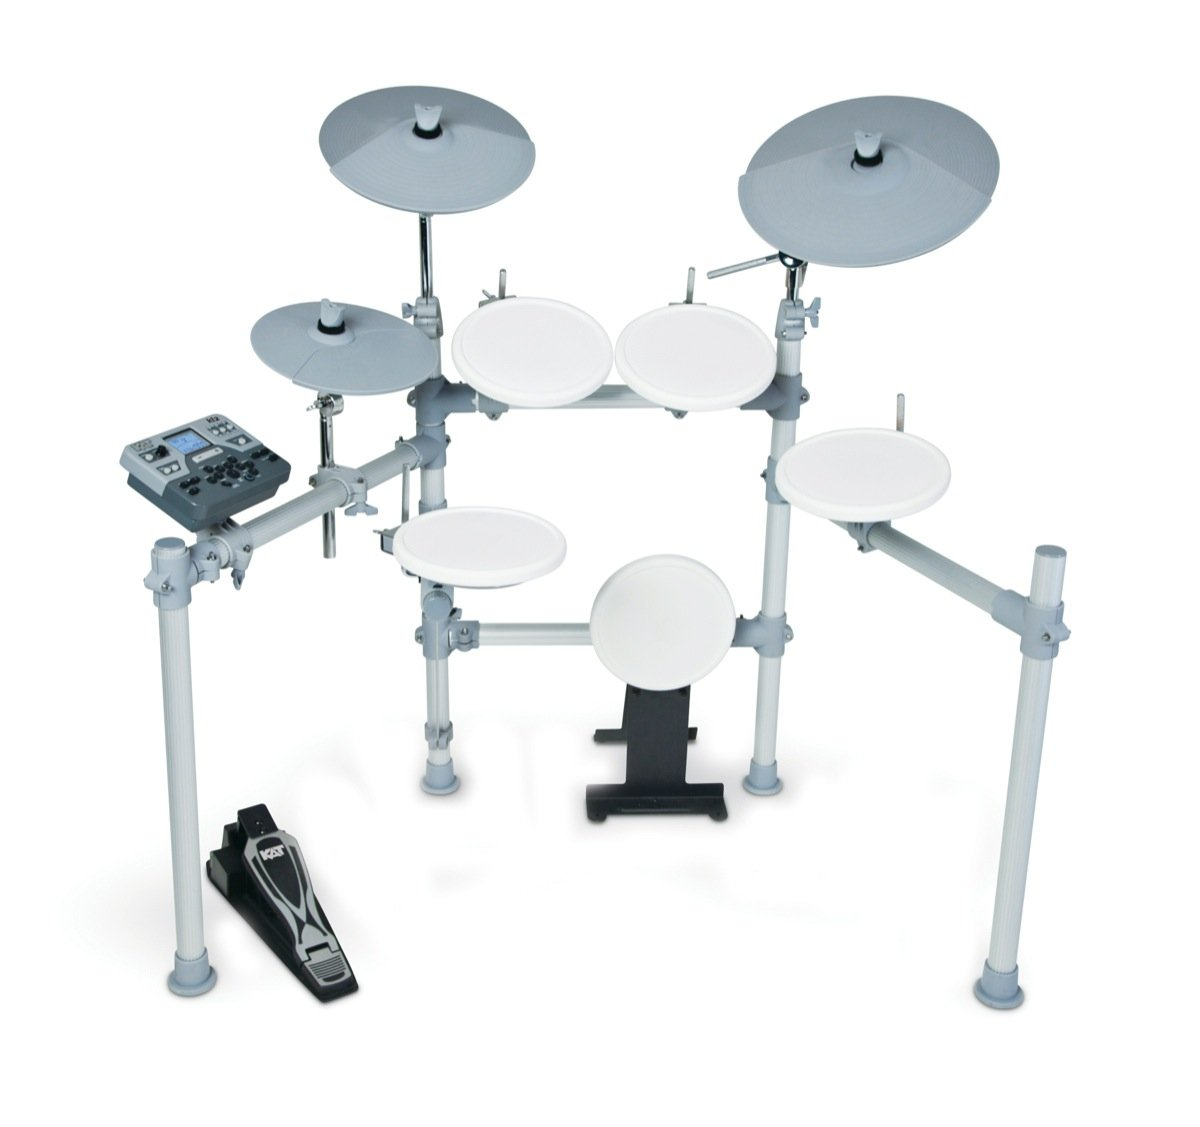 KAT Percussion 5PC High Performance Digital Electronic Drum Set by KAT Percussion